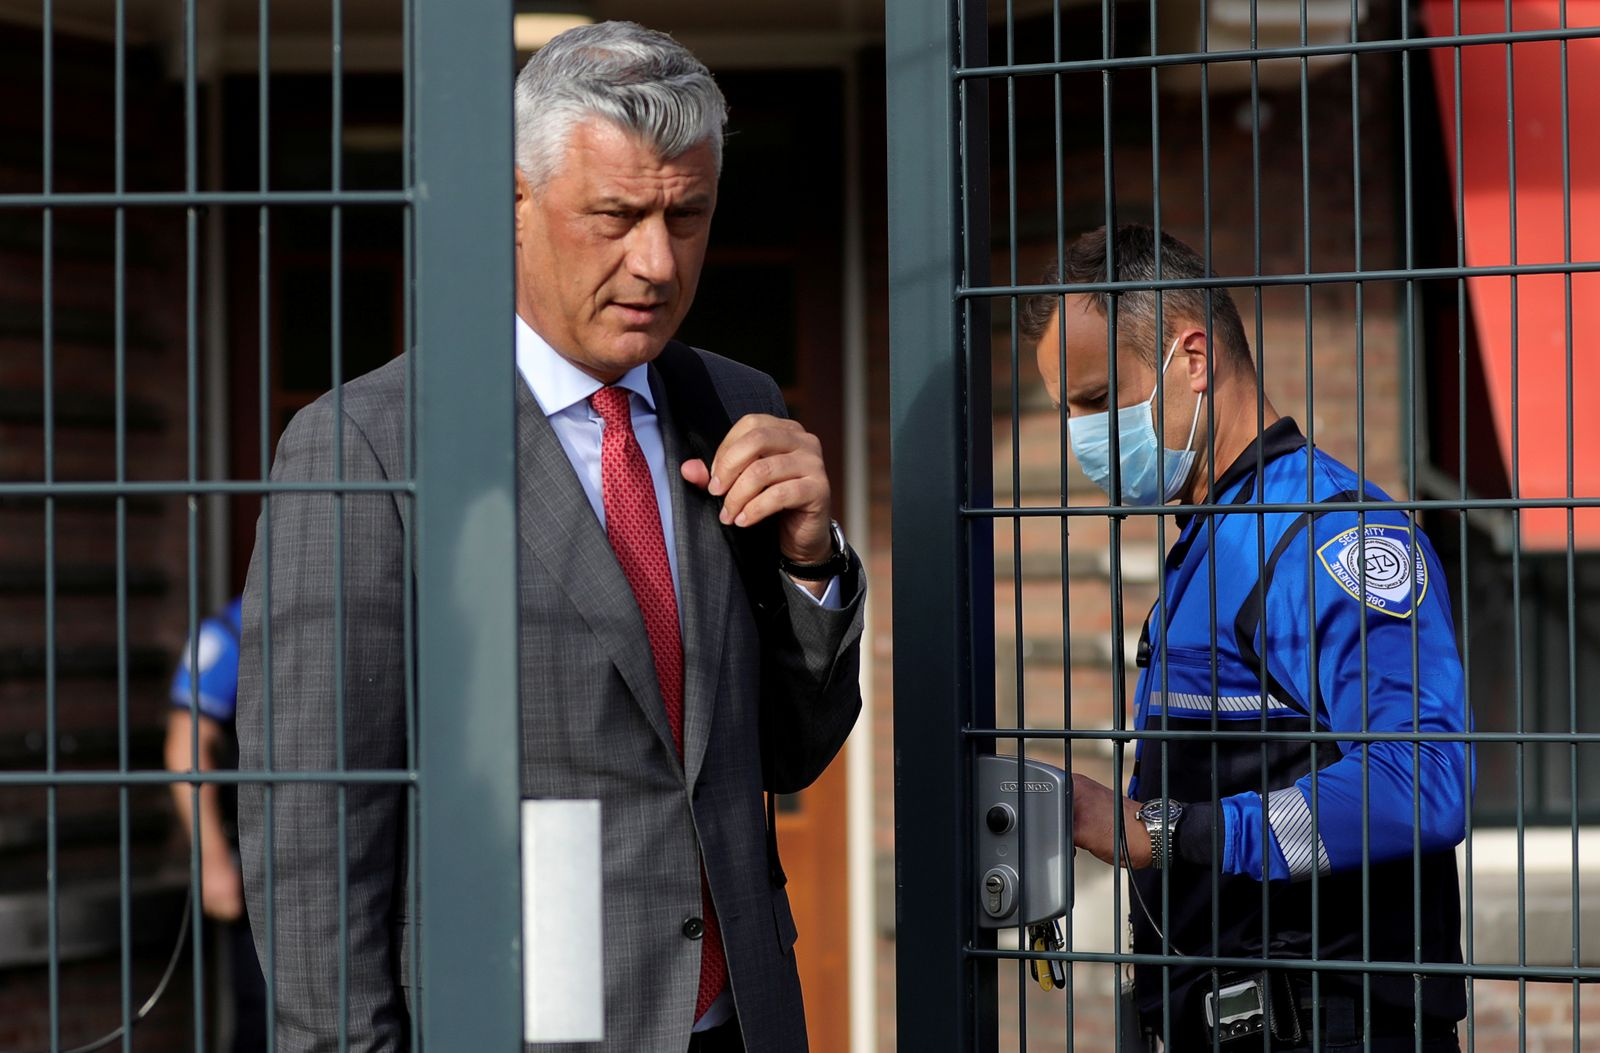 FILE PHOTO: Kosovo's President Hashim Thaci leaves after being interviewed by war crimes prosecutors after being indicted by a special tribunal, in The Hague